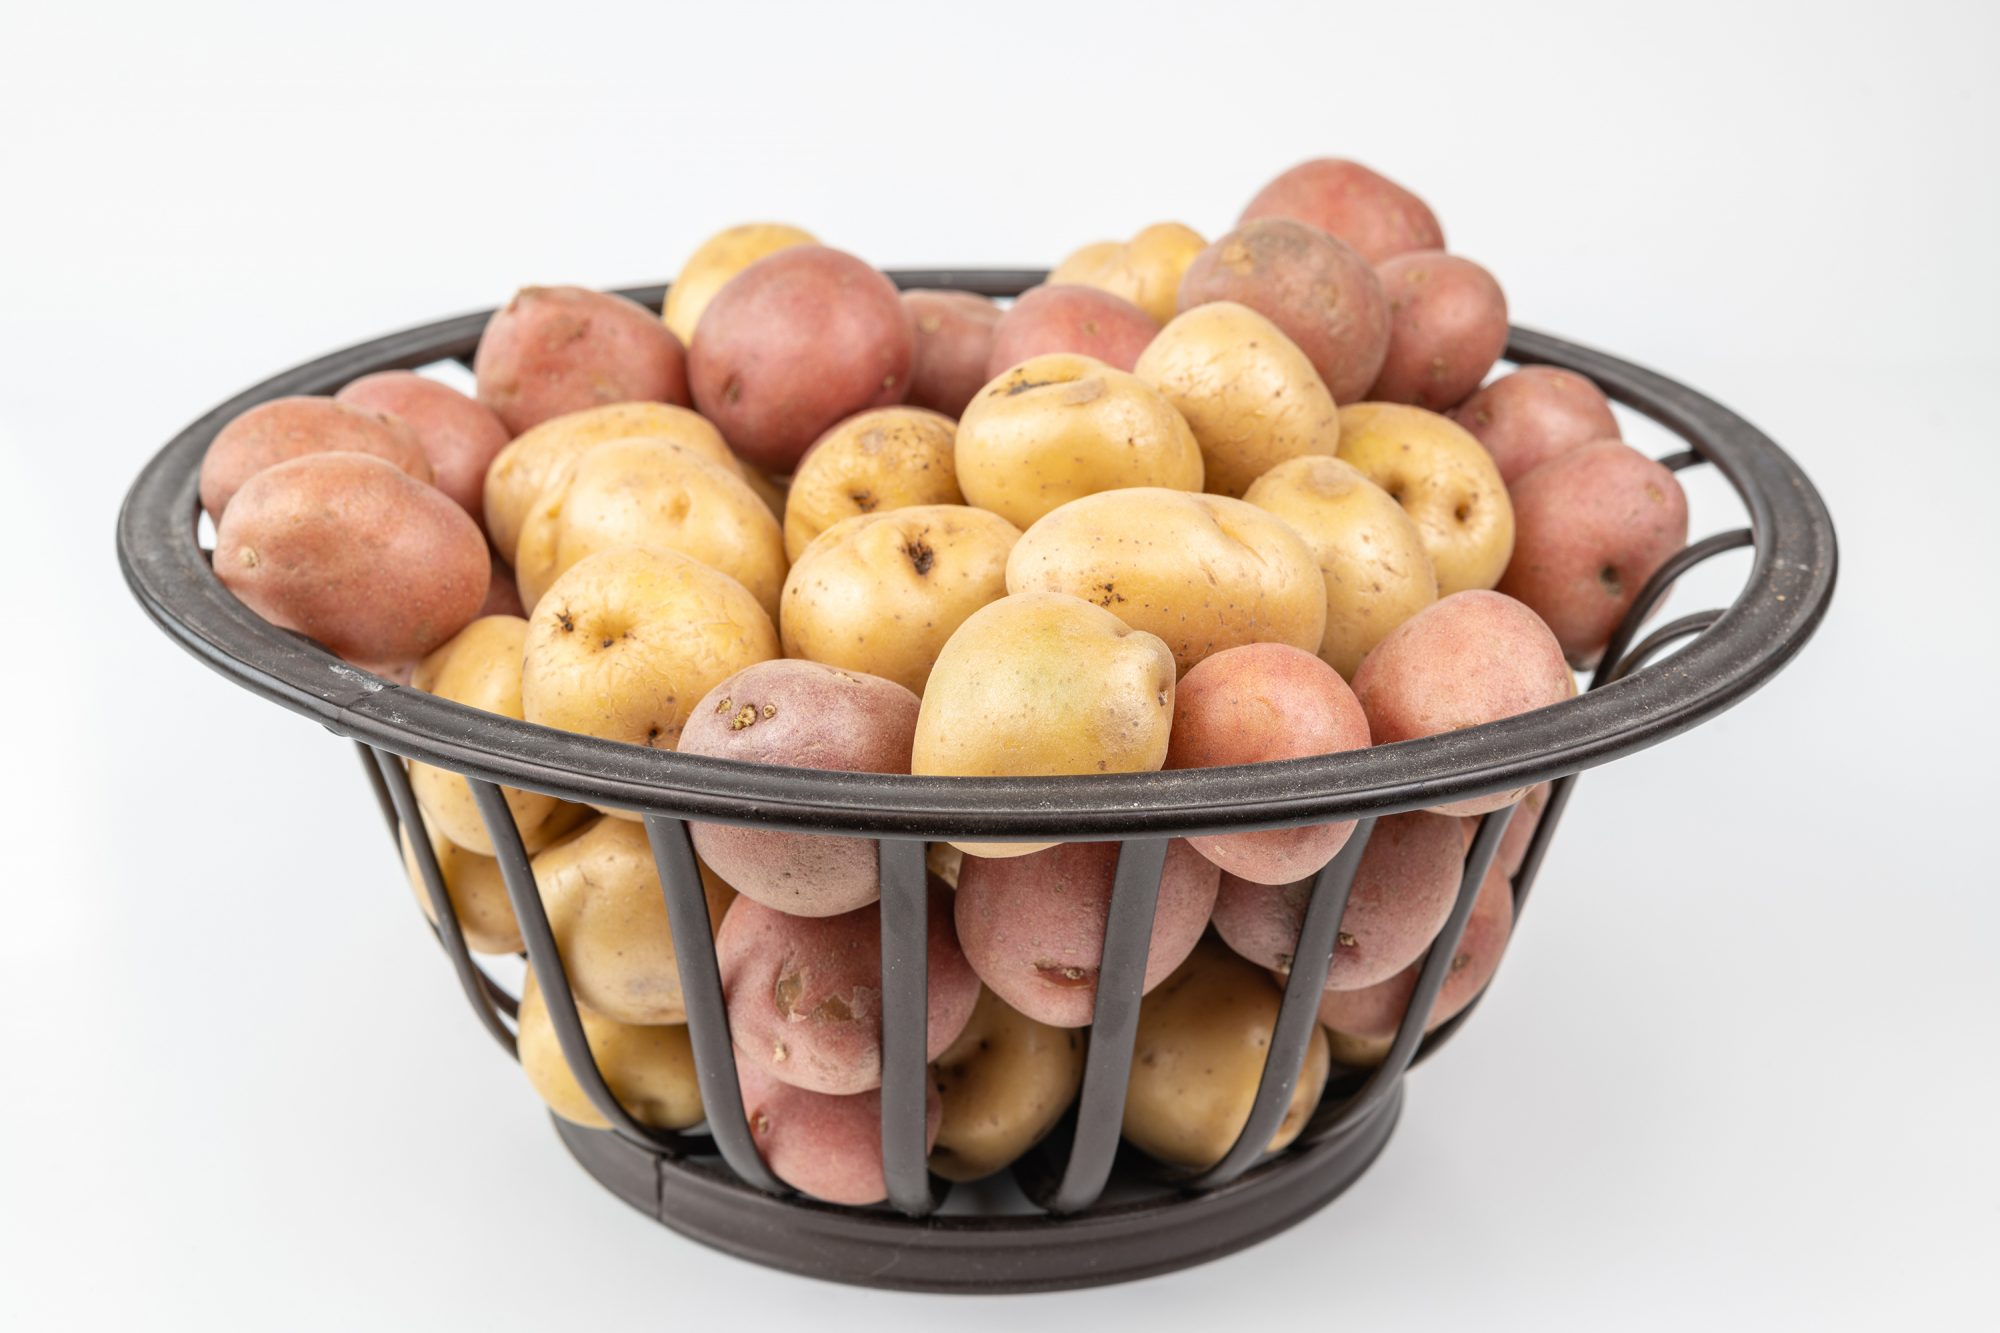 Small potatoes of different colors in a container